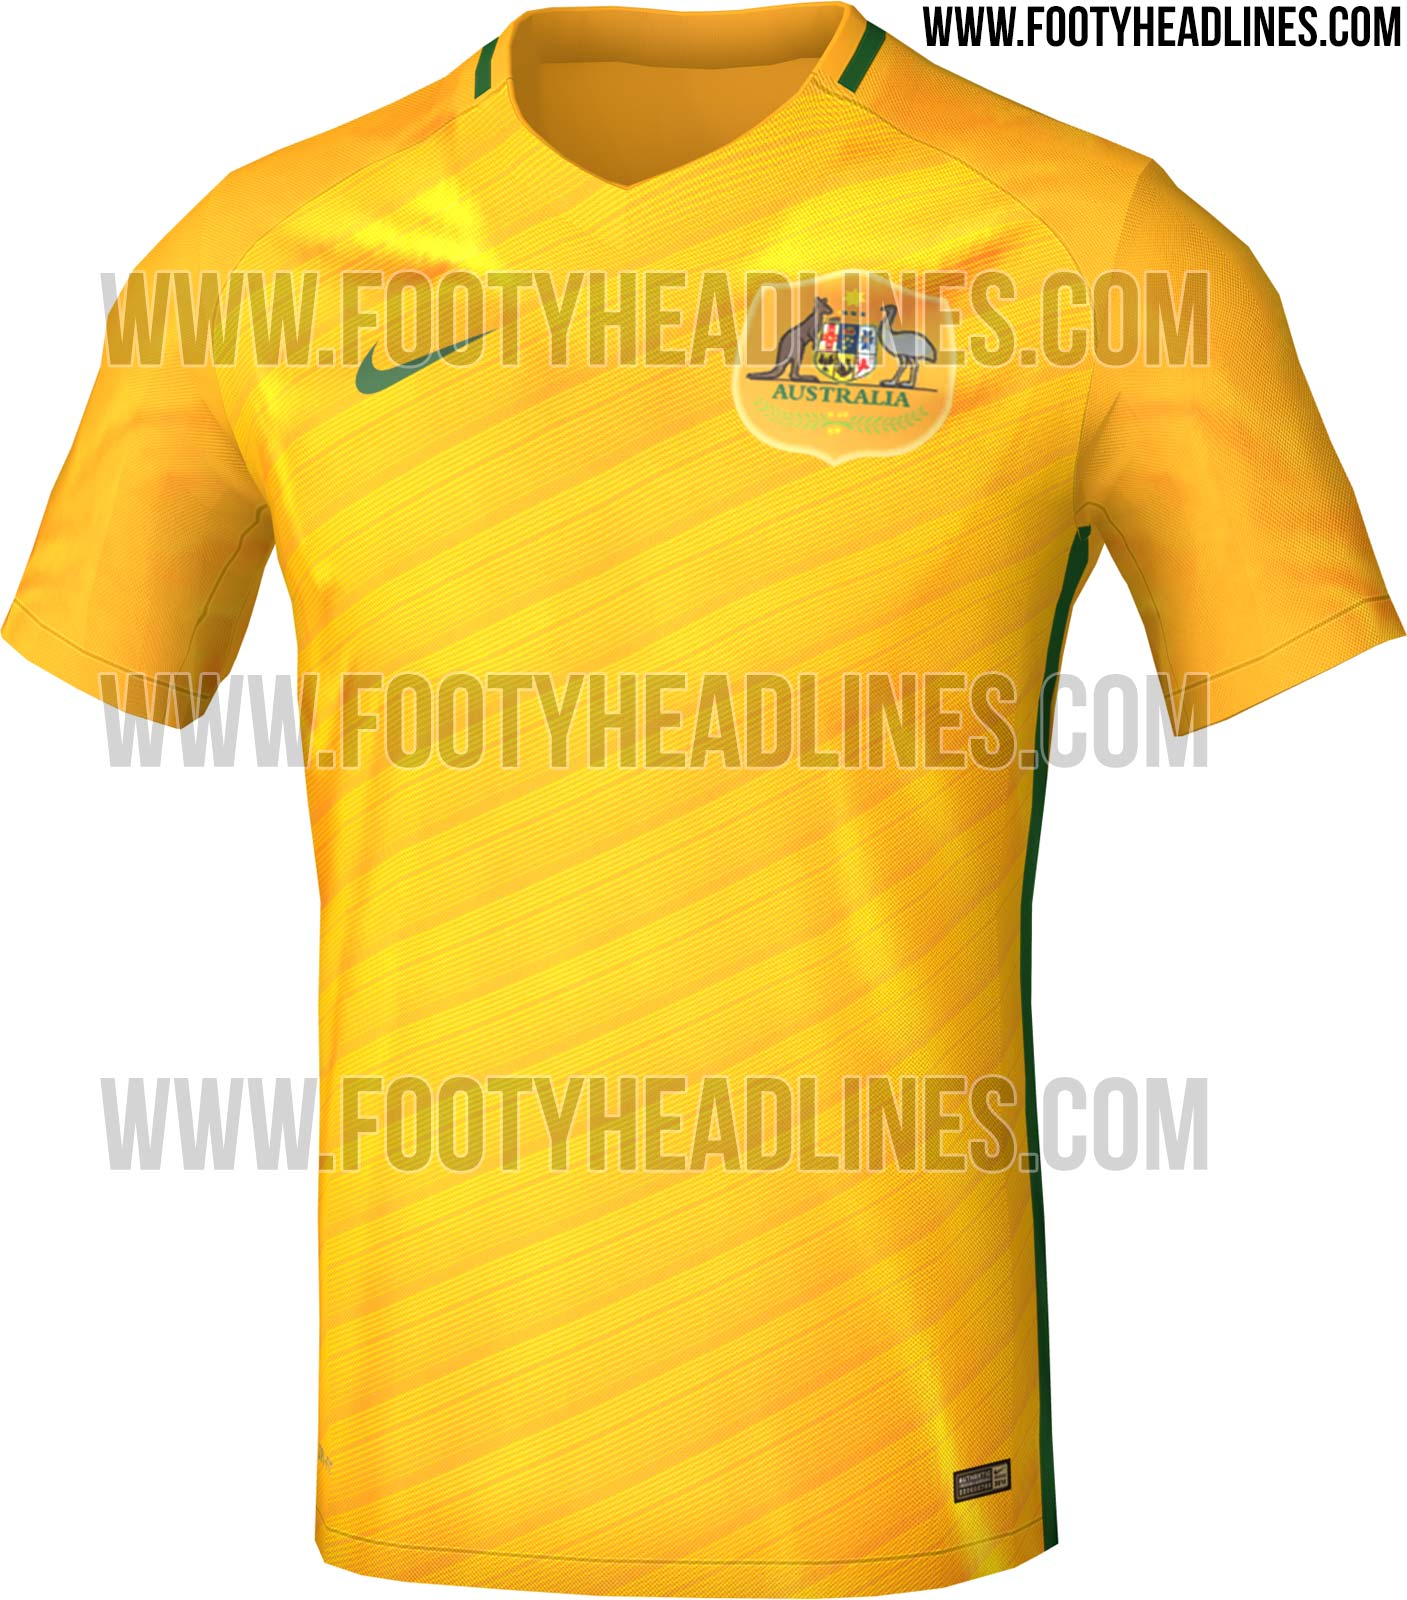 2c4bb88049f Unlike the new 2016 jerseys of the likes of England, France and the United  States, the new Australia home kit is not based on Nike's new Vapor kit  template.